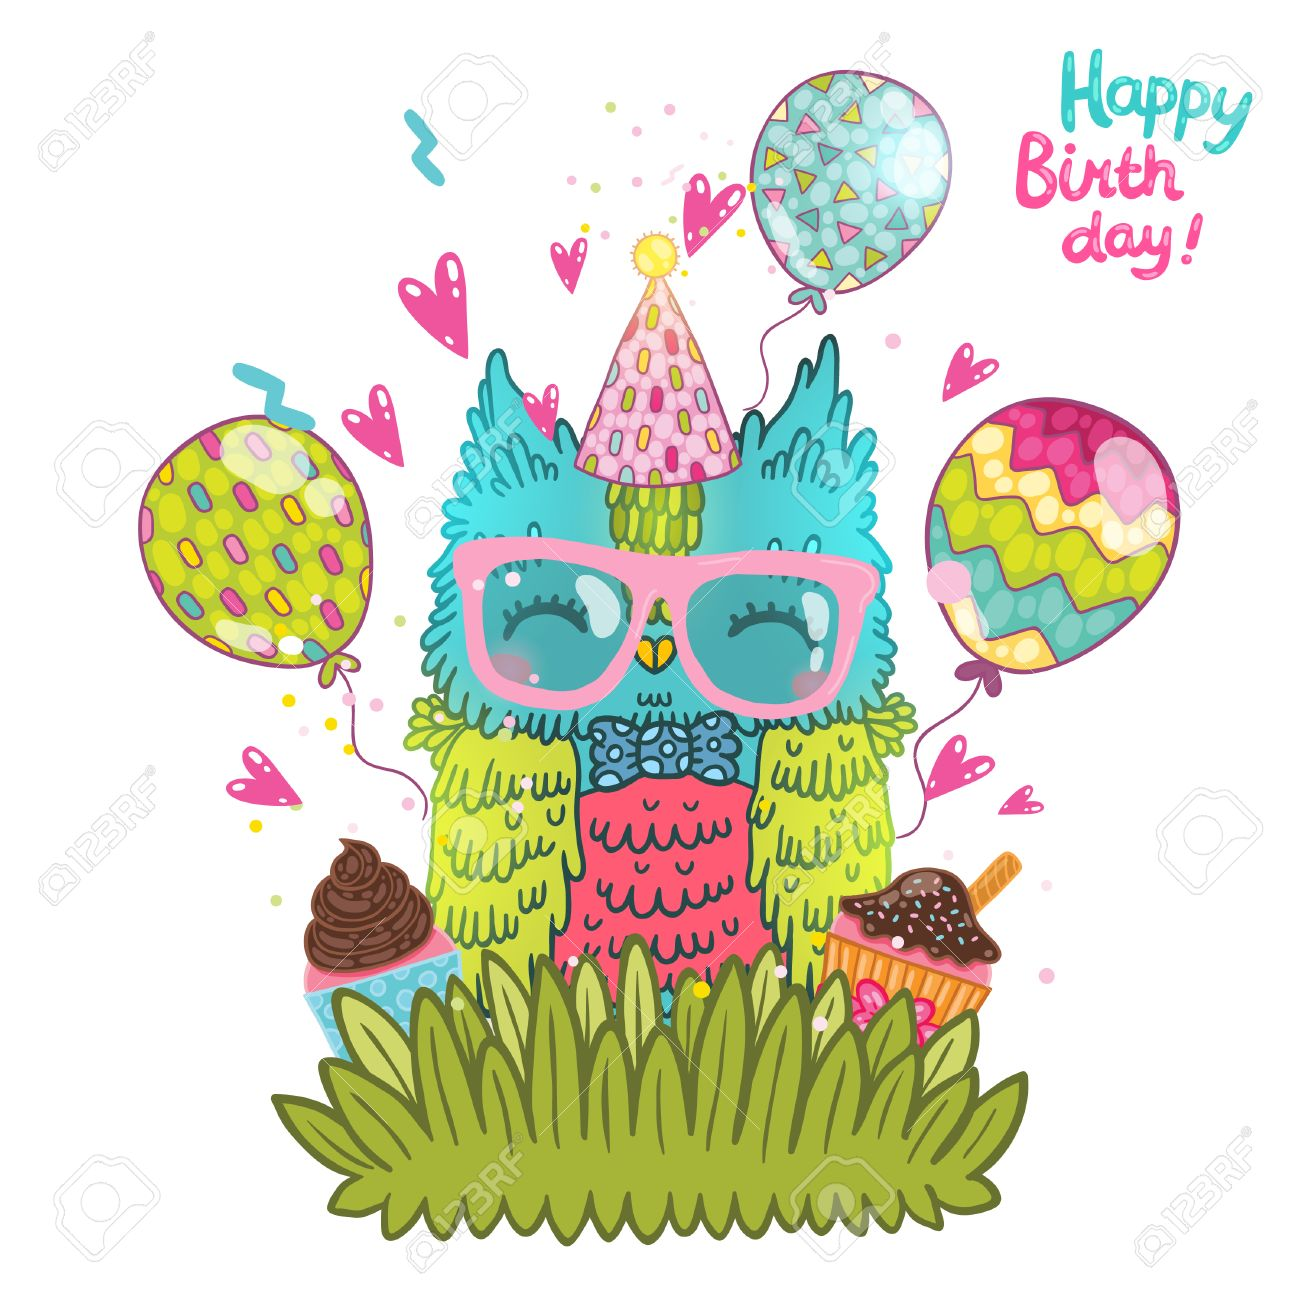 clipart of birthday wishes ; 29378193-happy-birthday-greeting-background-with-an-owl-vector-illustration